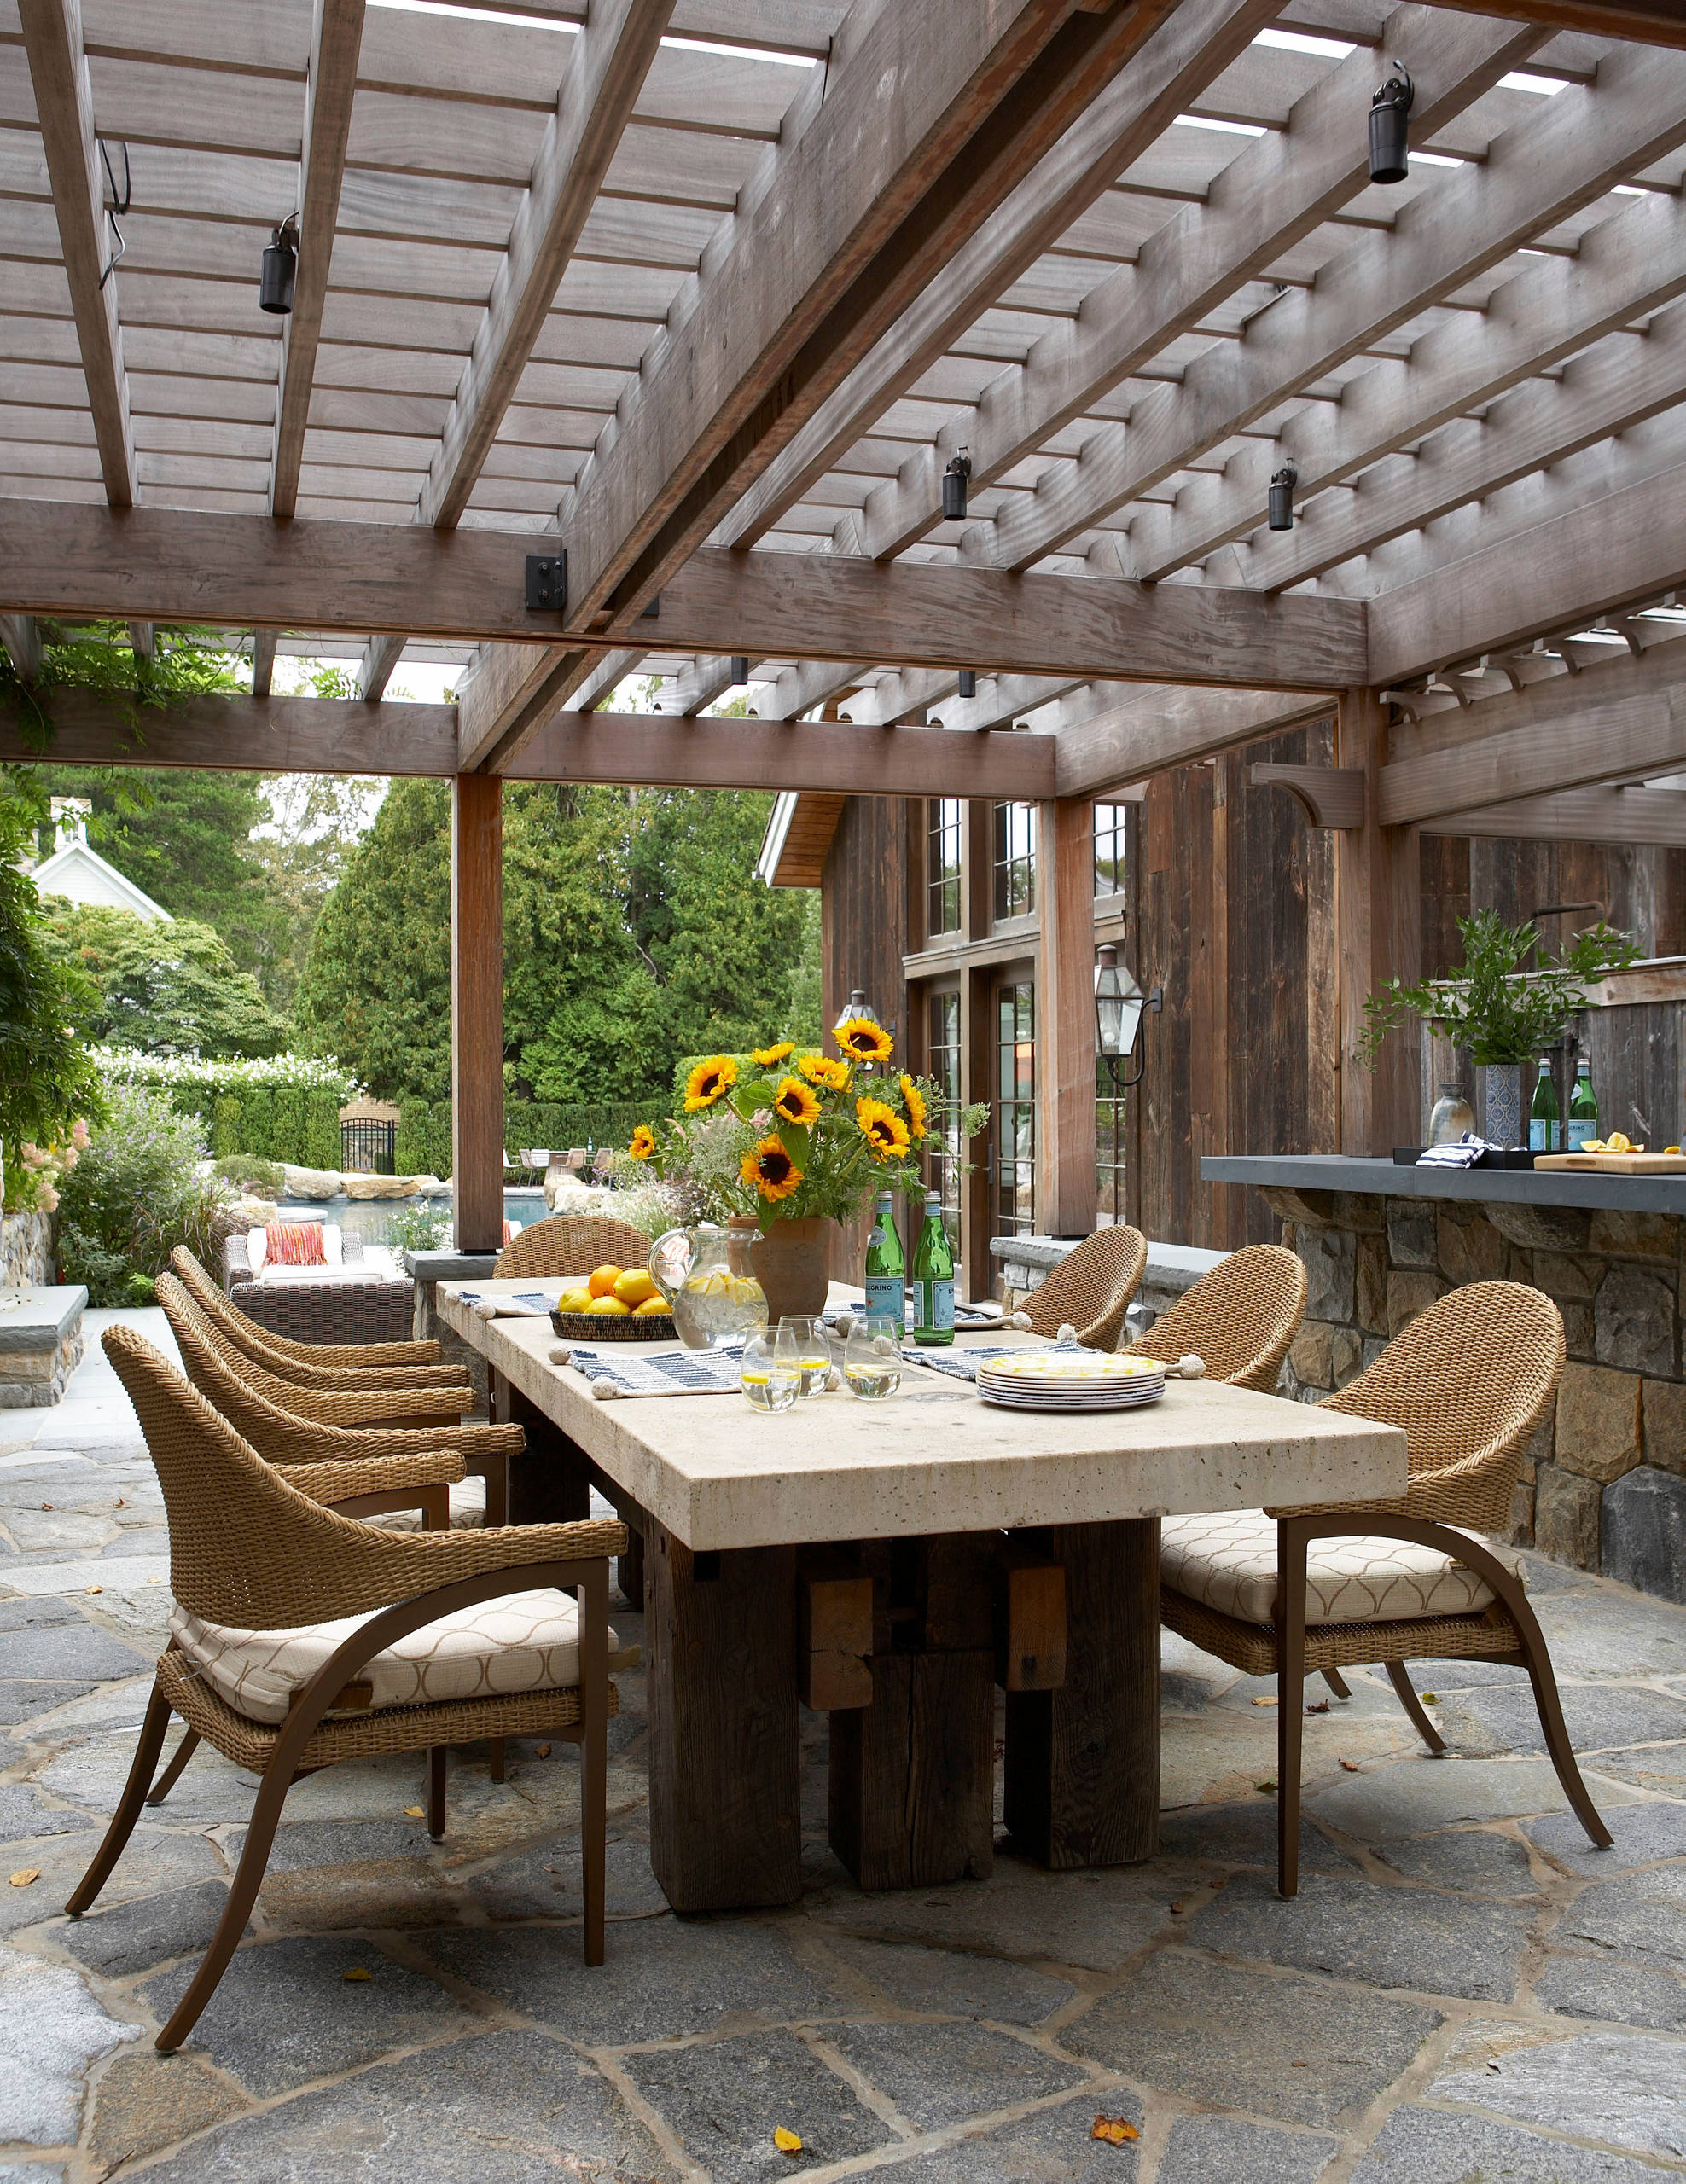 Outdoor Dining Table Centerpiece Ideas Photos Houzz